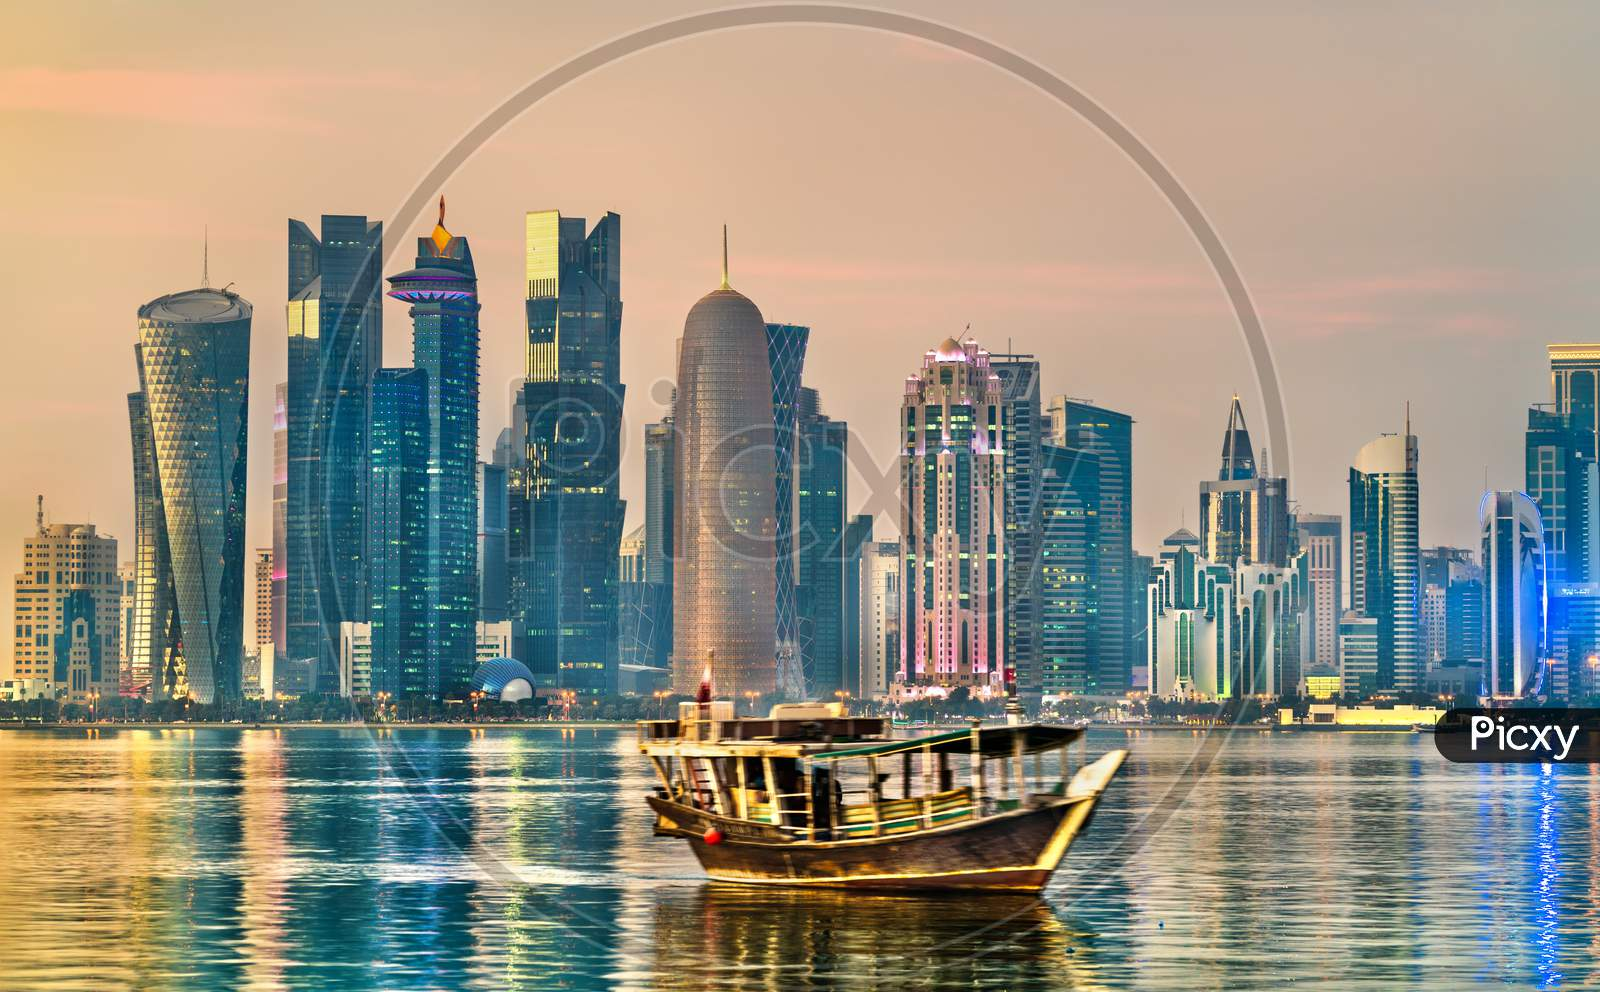 Dhow, A Traditional Wooden Boat, In Doha, Qatar